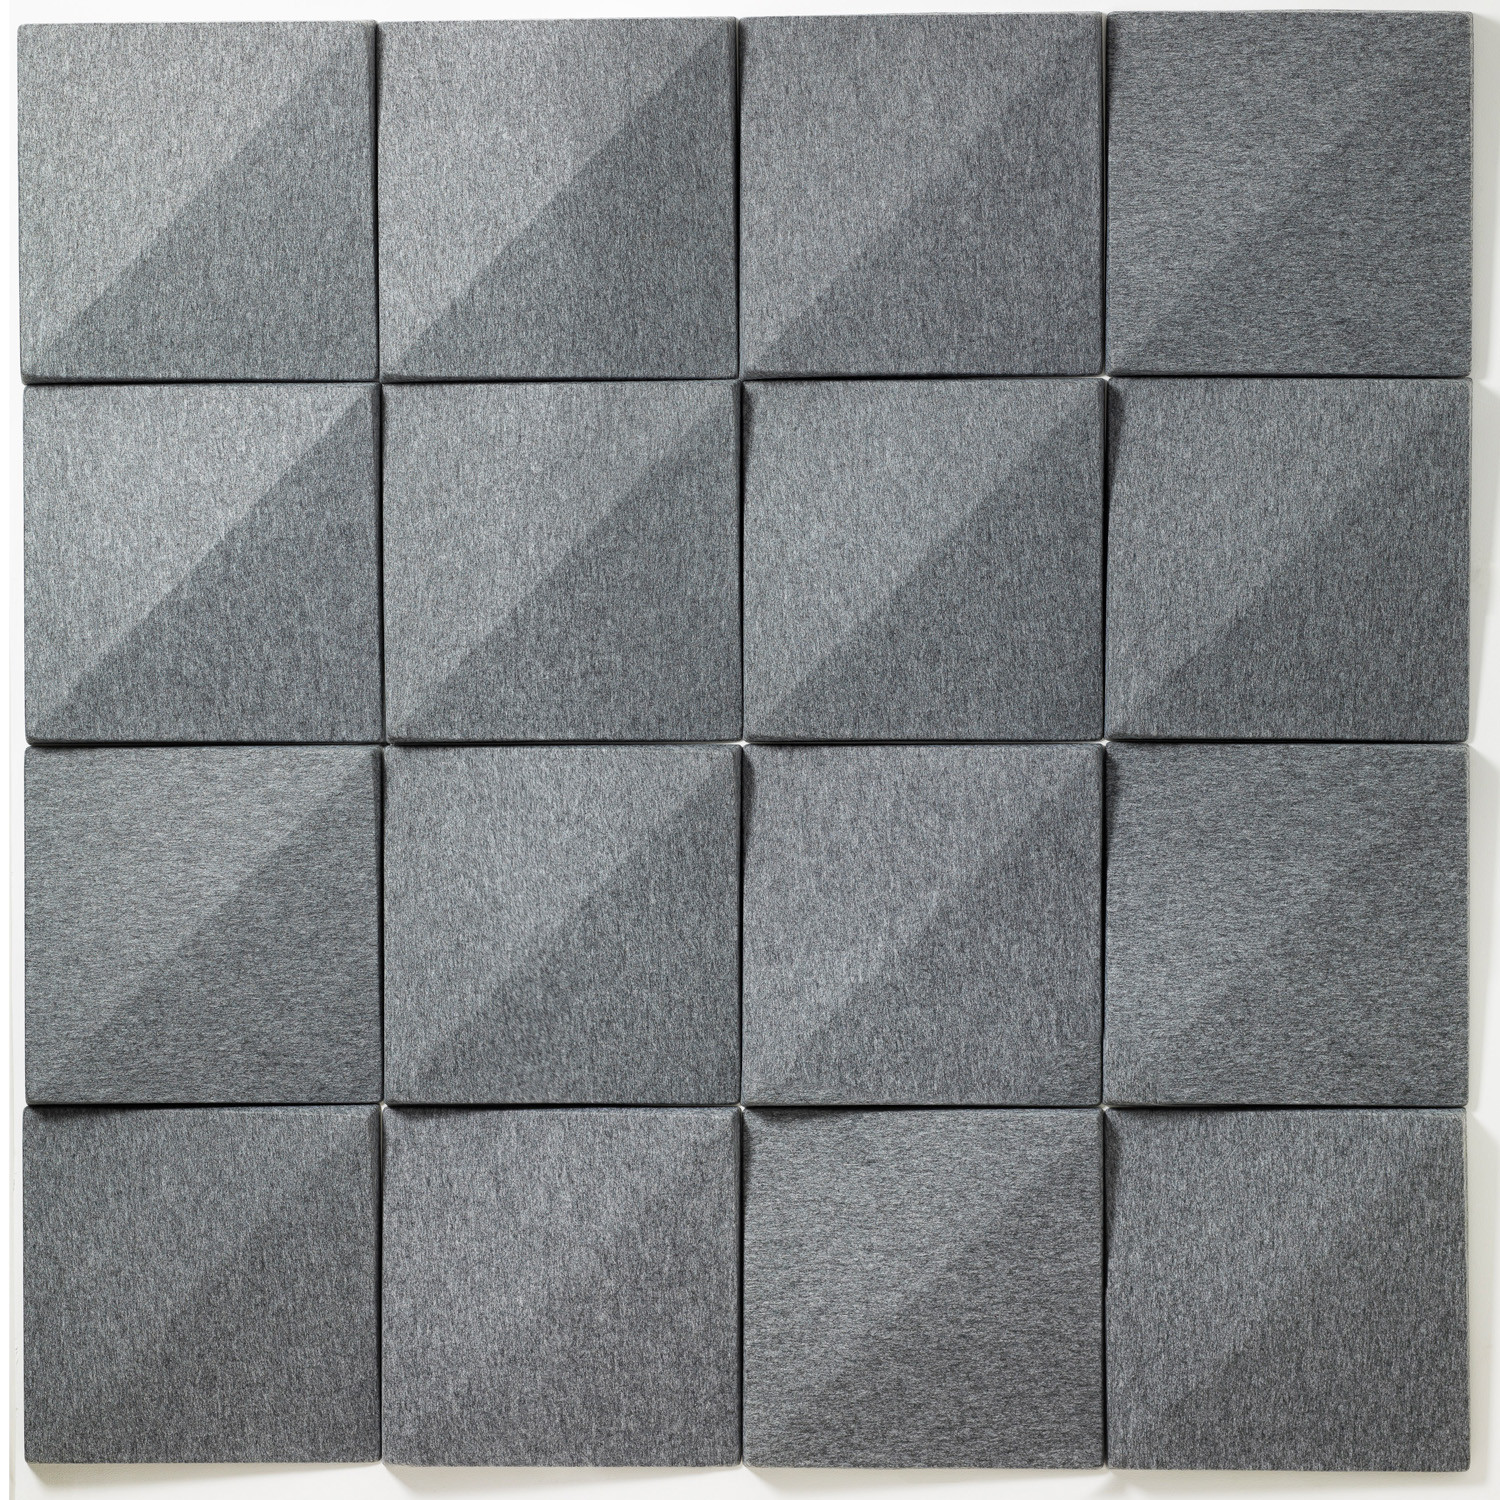 Bella acoustic wall panels wall panels apres furniture - Decorative acoustic wall panels ...